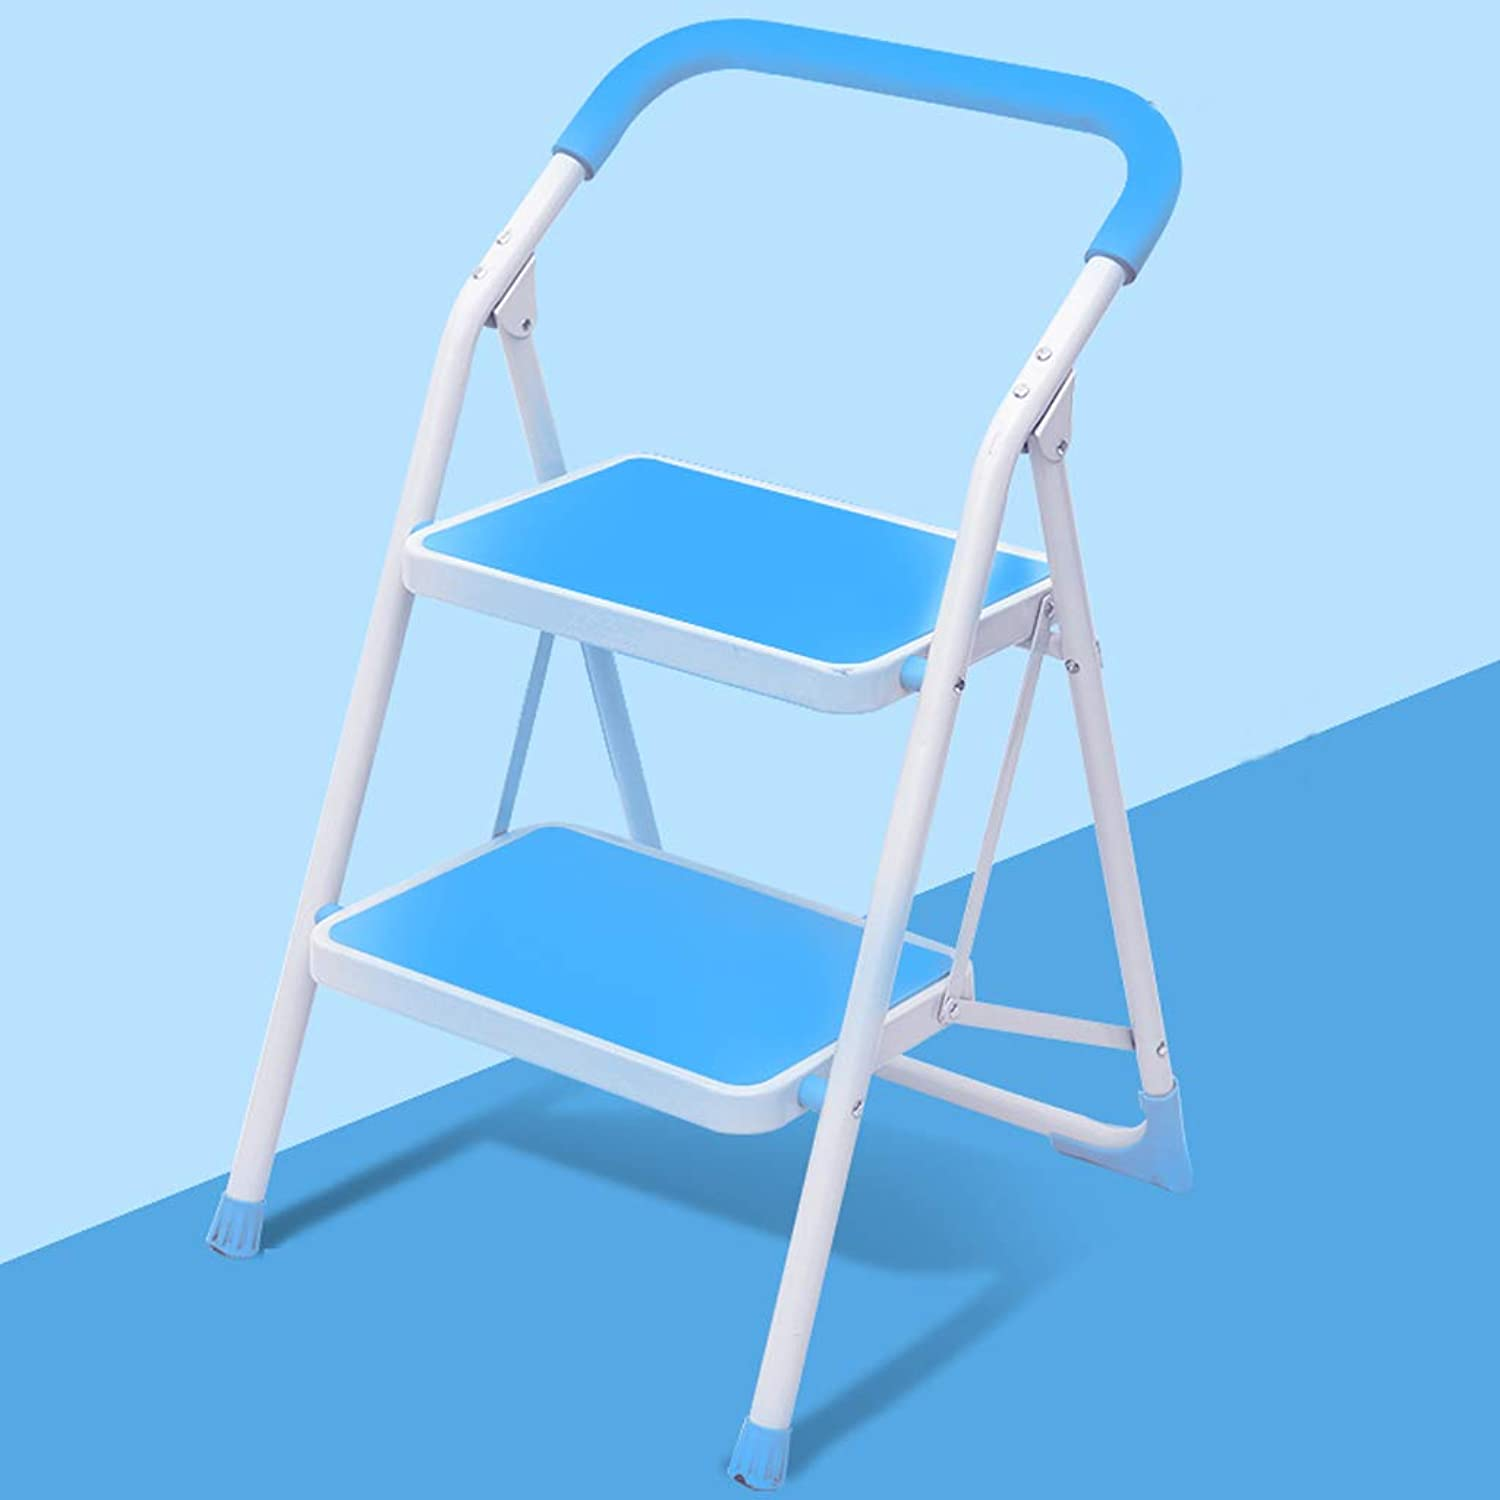 WaWei Step Stool Two-Step Household Folding Small Ladder Ladder Chair Dual-use Ladder Bench Thickening Indoor Multi-Function Herringbone Ladder Step Stool (color   bluee)